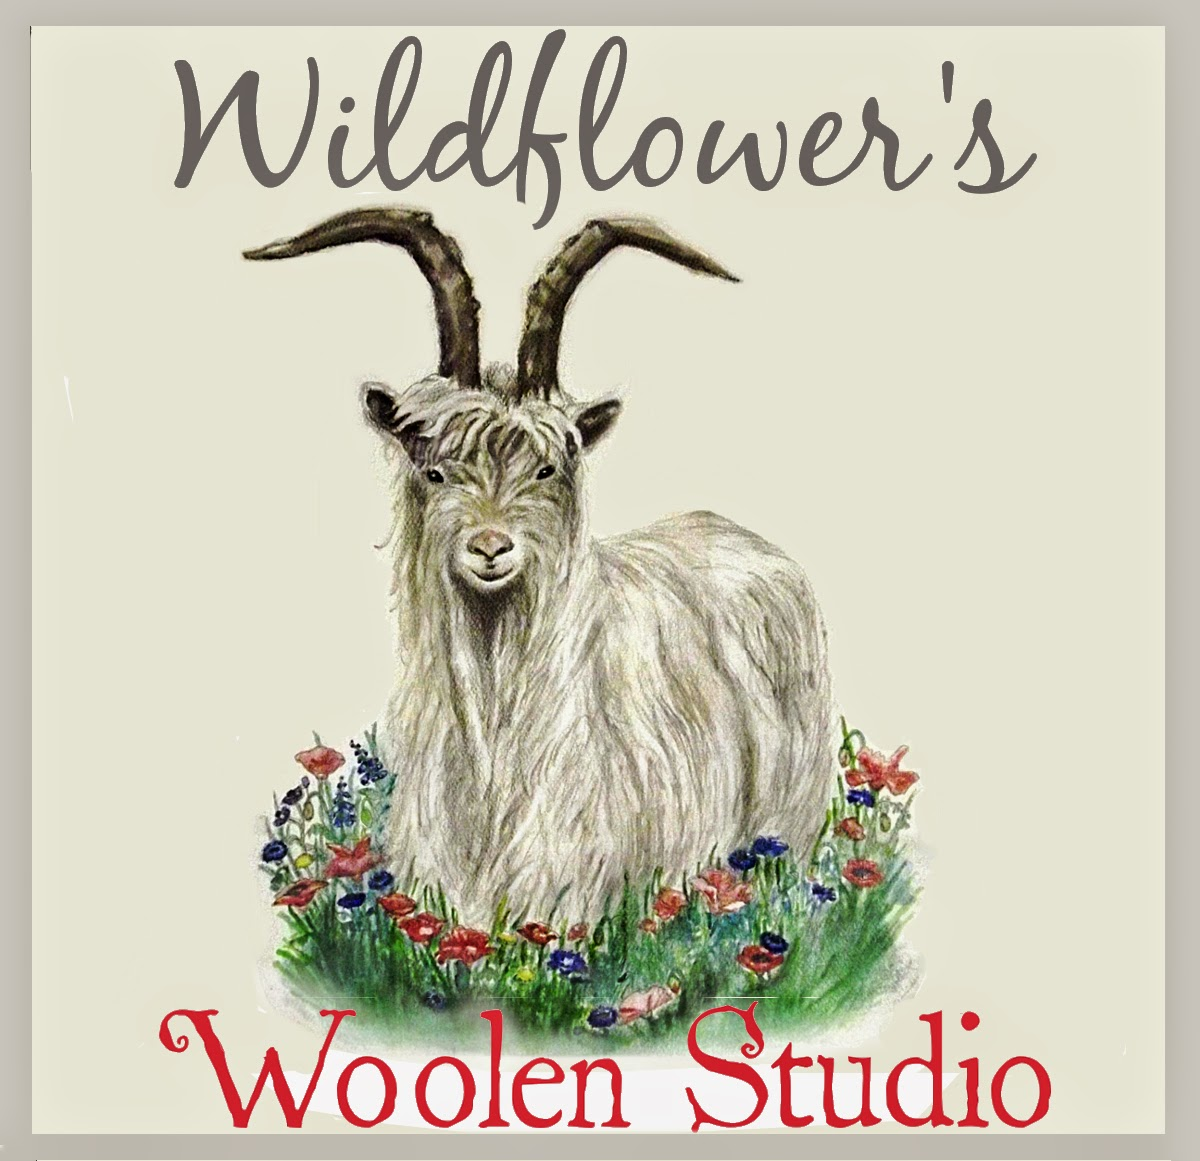 Wildflower the Goat - for a Logo and Button